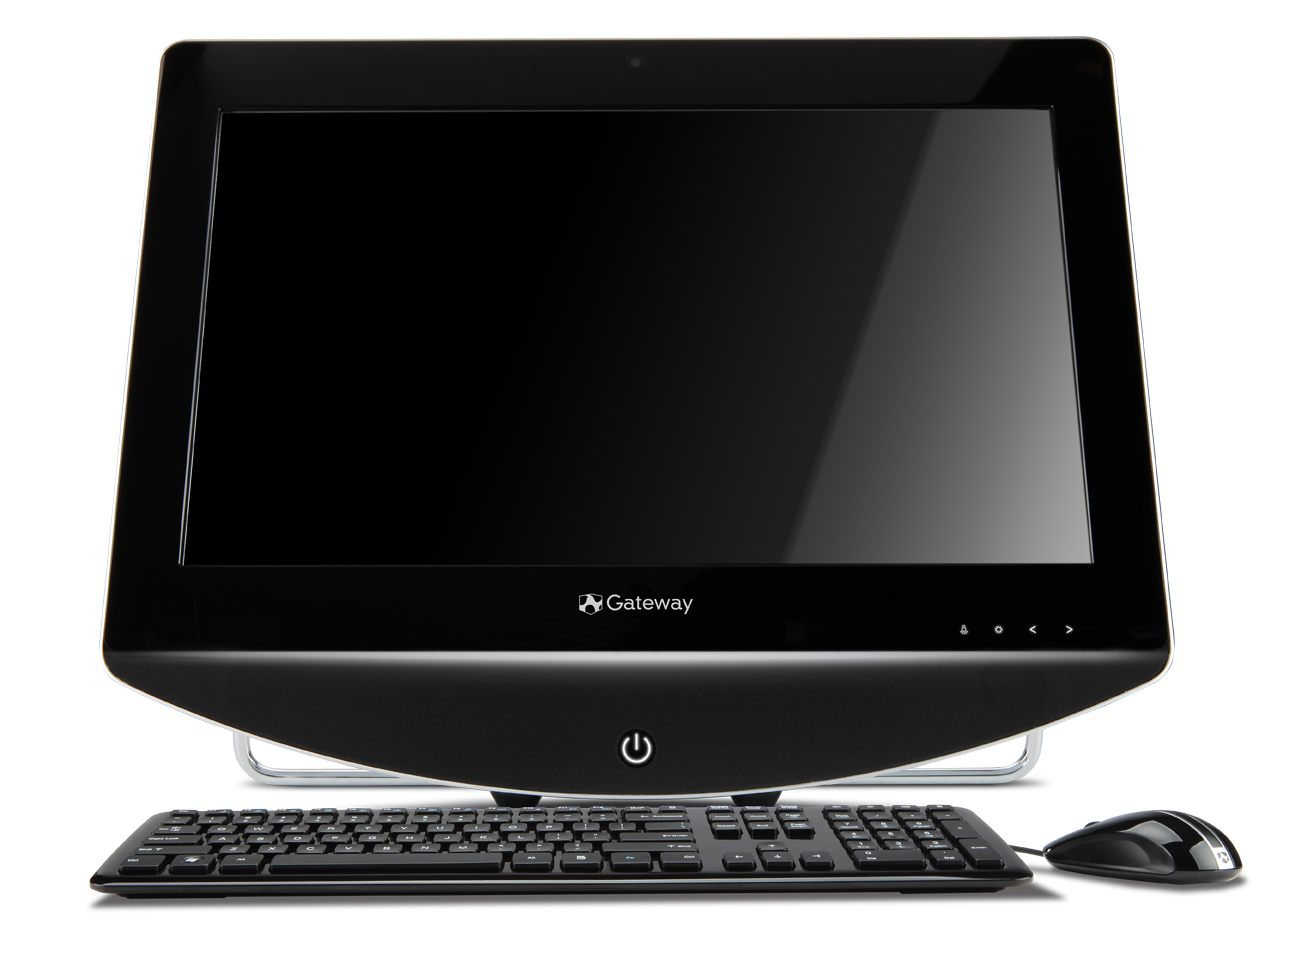 Gateway's new One ZX6951 features a redesigned chassis, a 23-inch screen, and a Blu-ray drive.